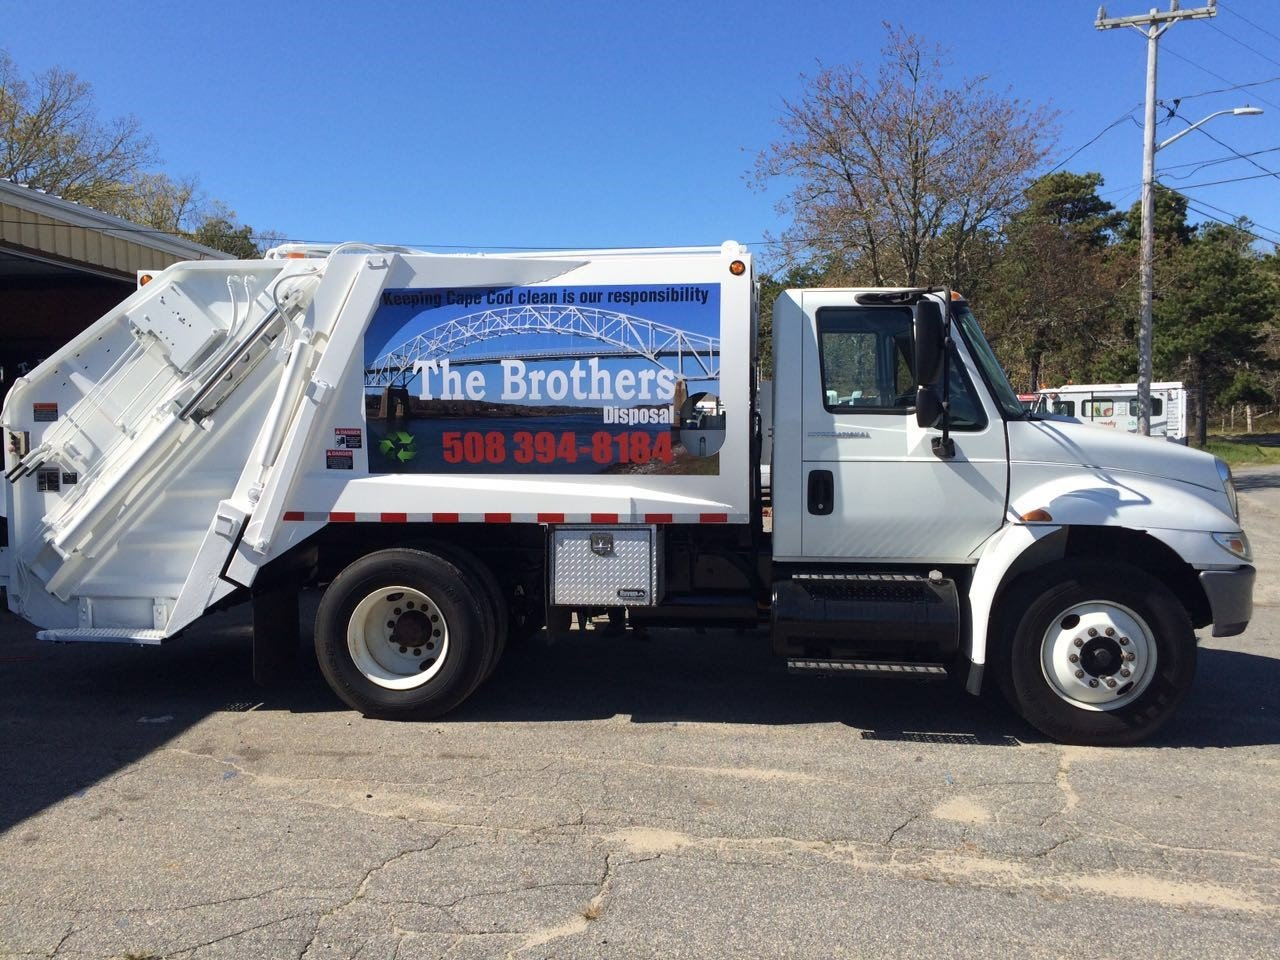 The Brother Disposal Garbage Disposal South Dennis Ma